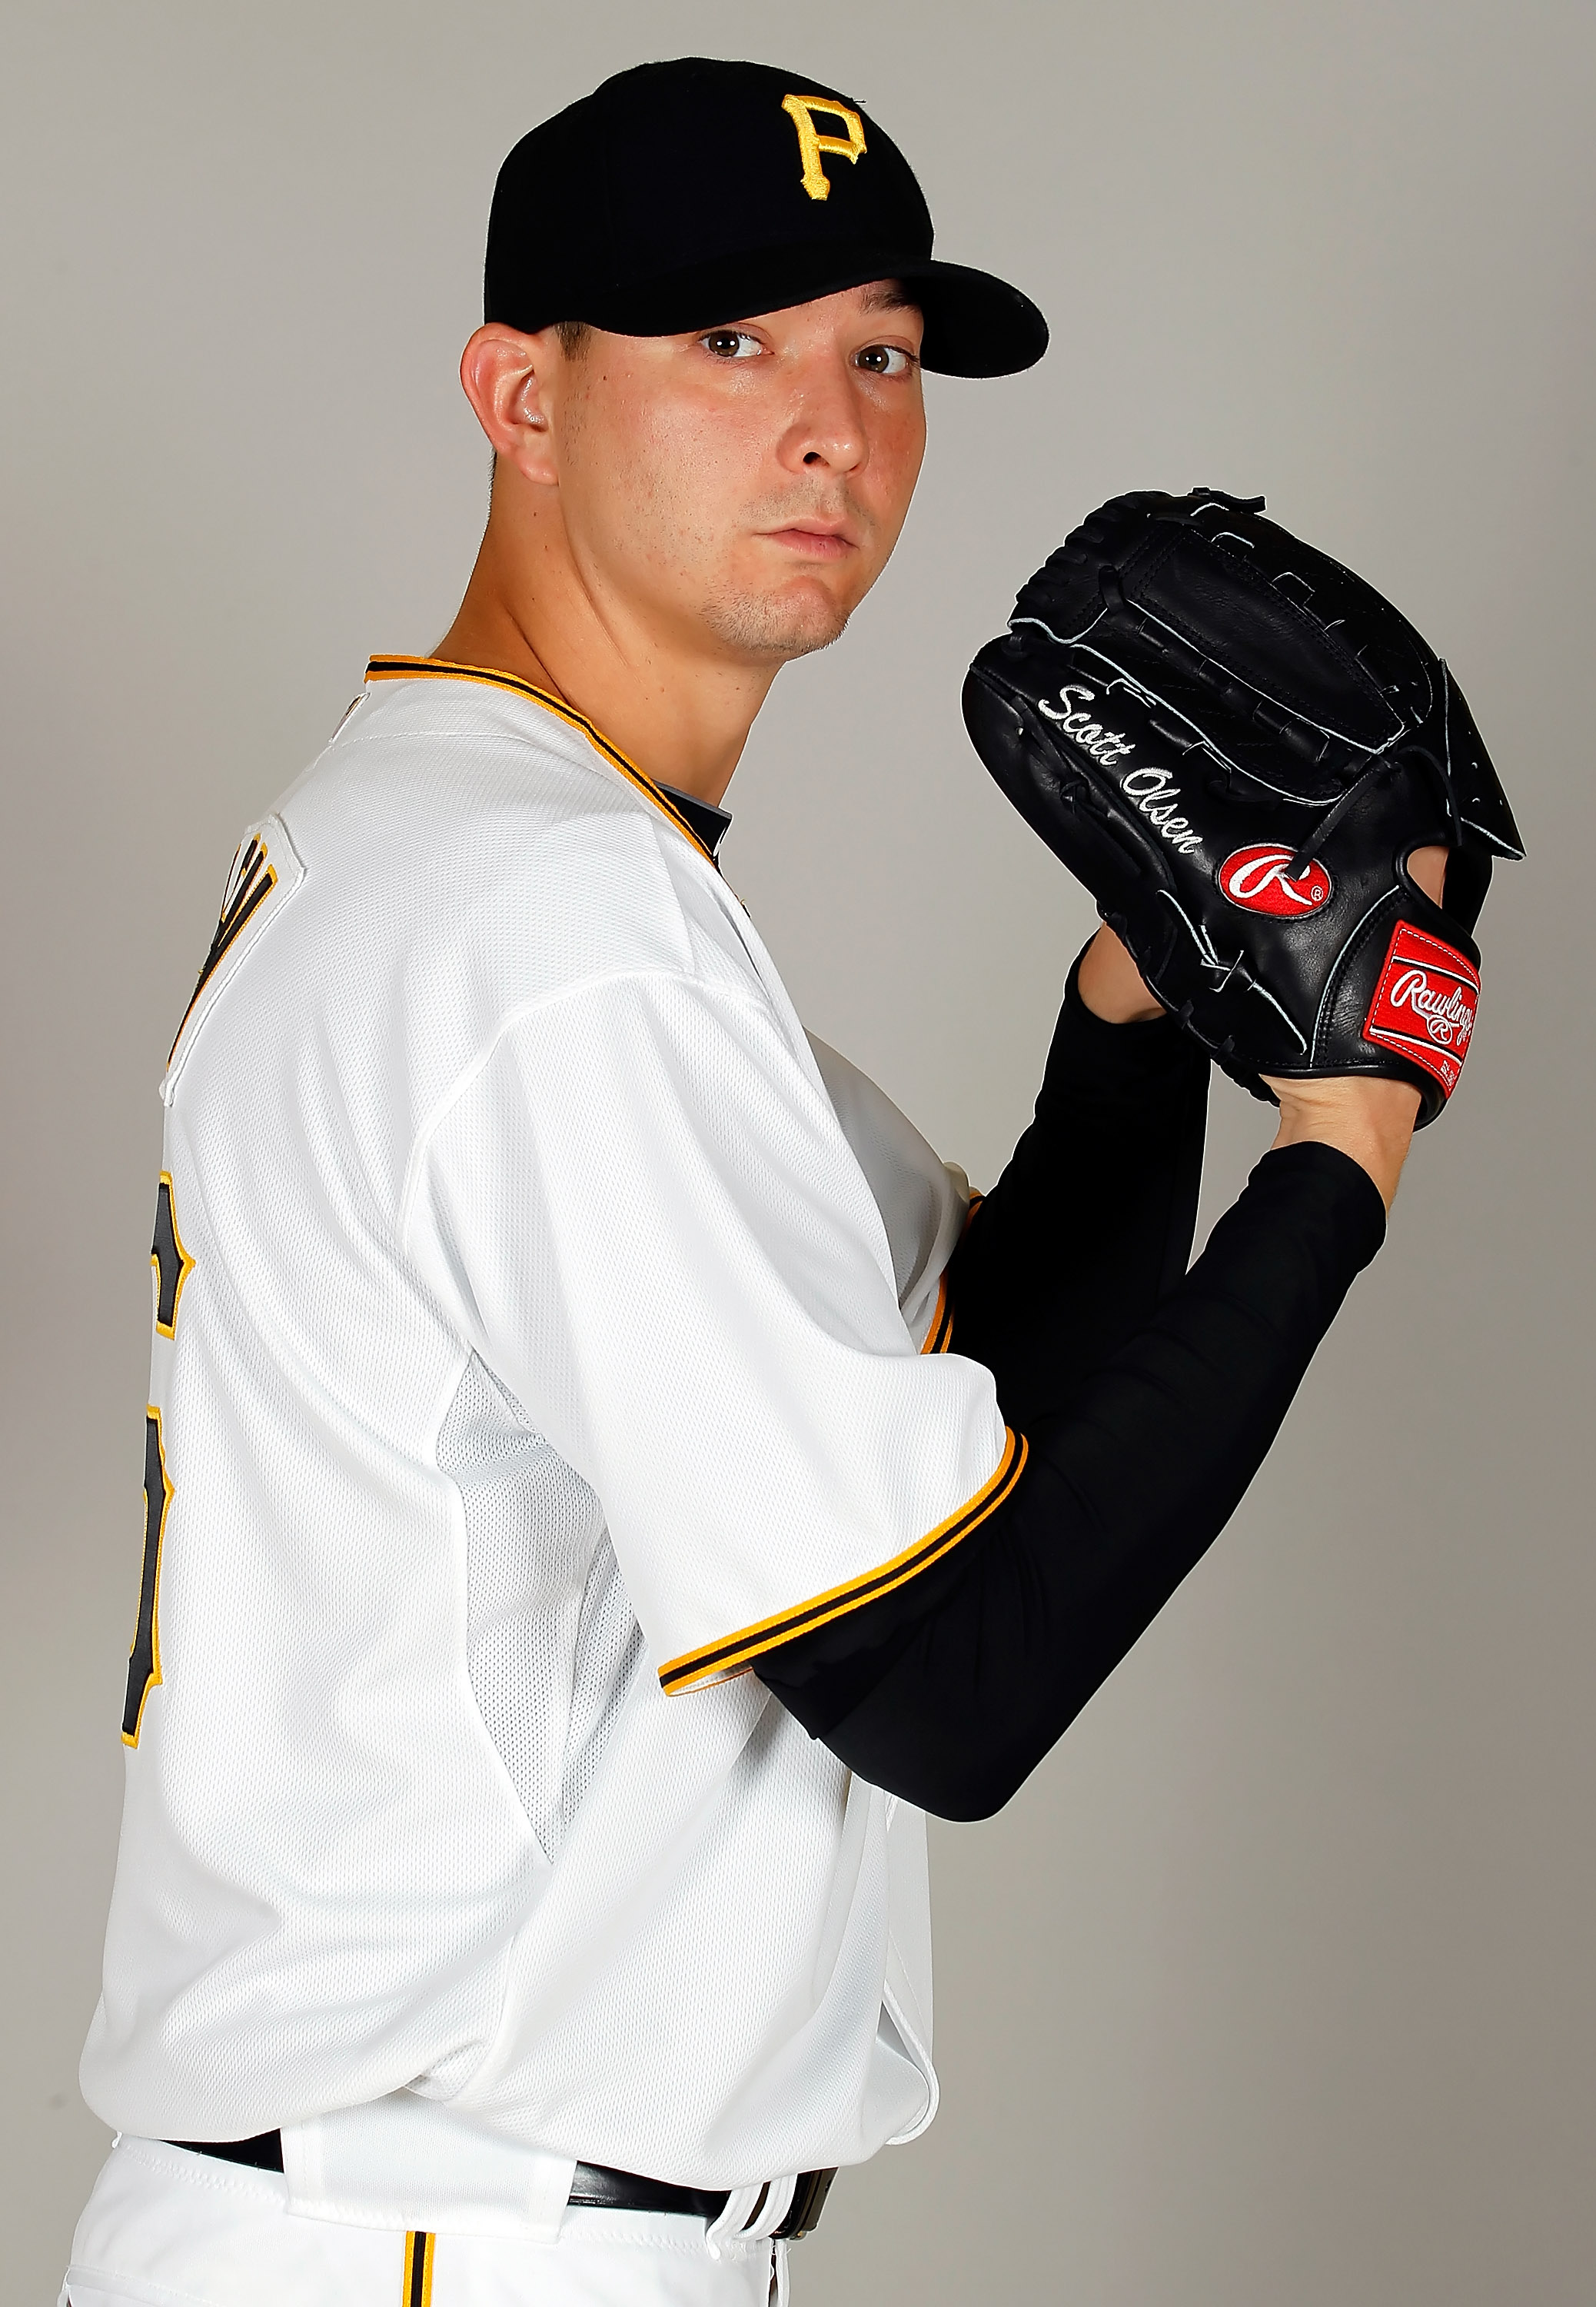 BRADENTON, FL - FEBRUARY 20:  Pitcher Scott Olsen #26 of the Pittsburgh Pirates poses for a photo during photo day at Pirate City on February 20, 2011 in Bradenton, Florida.  (Photo by J. Meric/Getty Images)